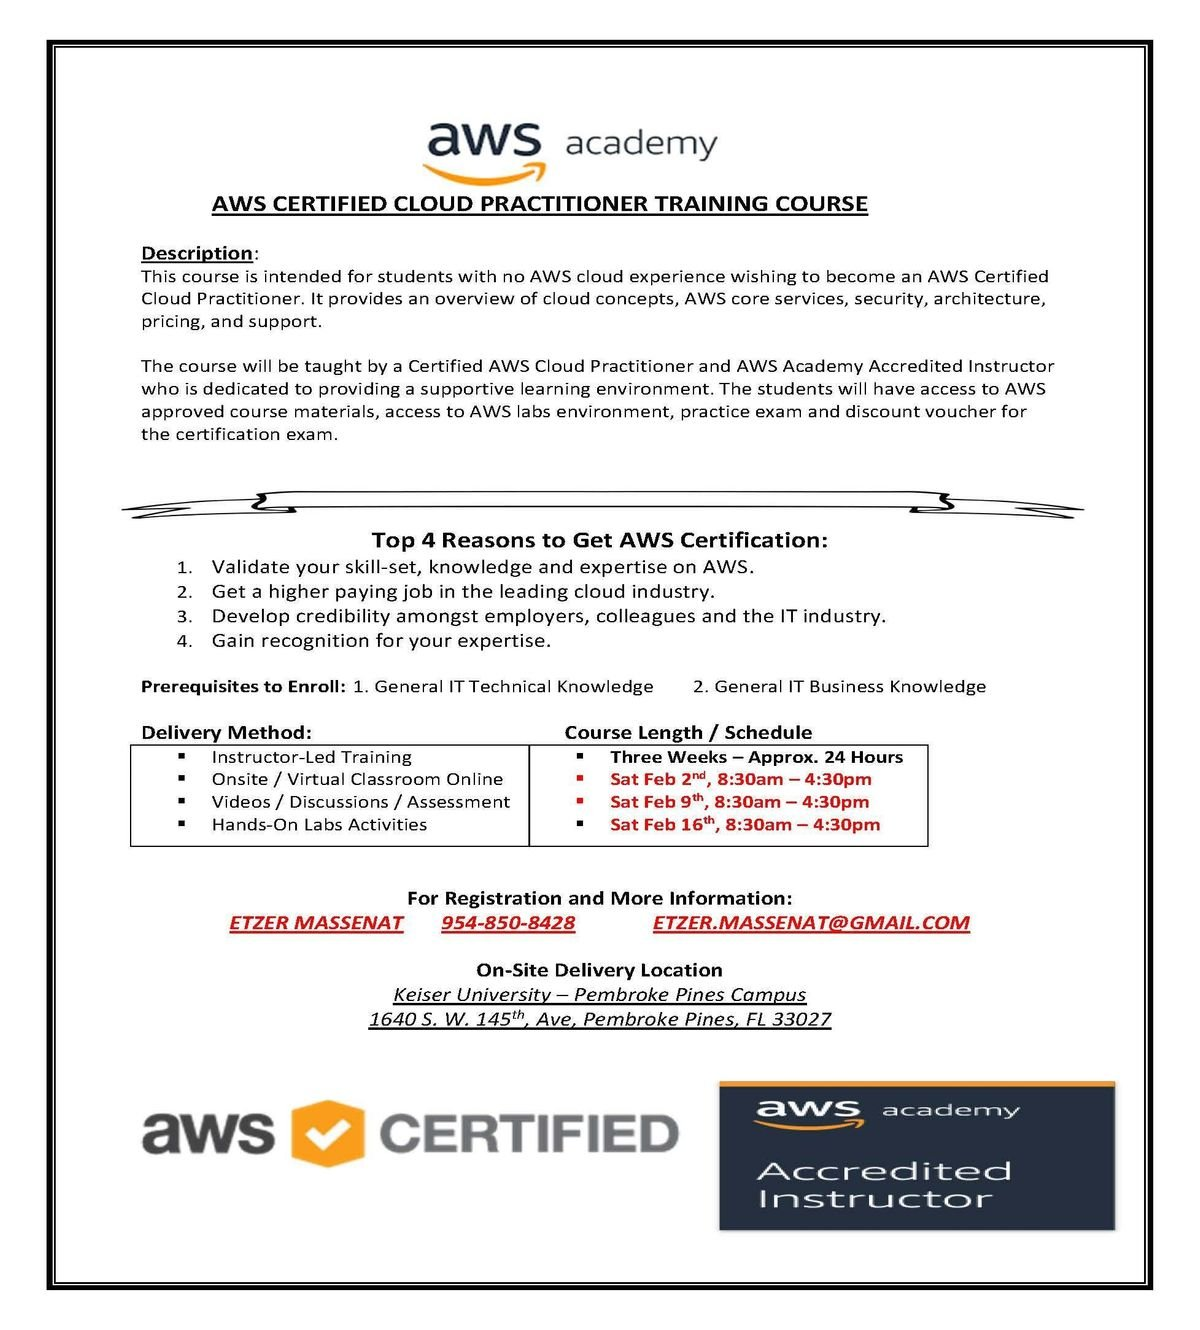 AWS Certified Cloud Practitioner Training Course at Keiser